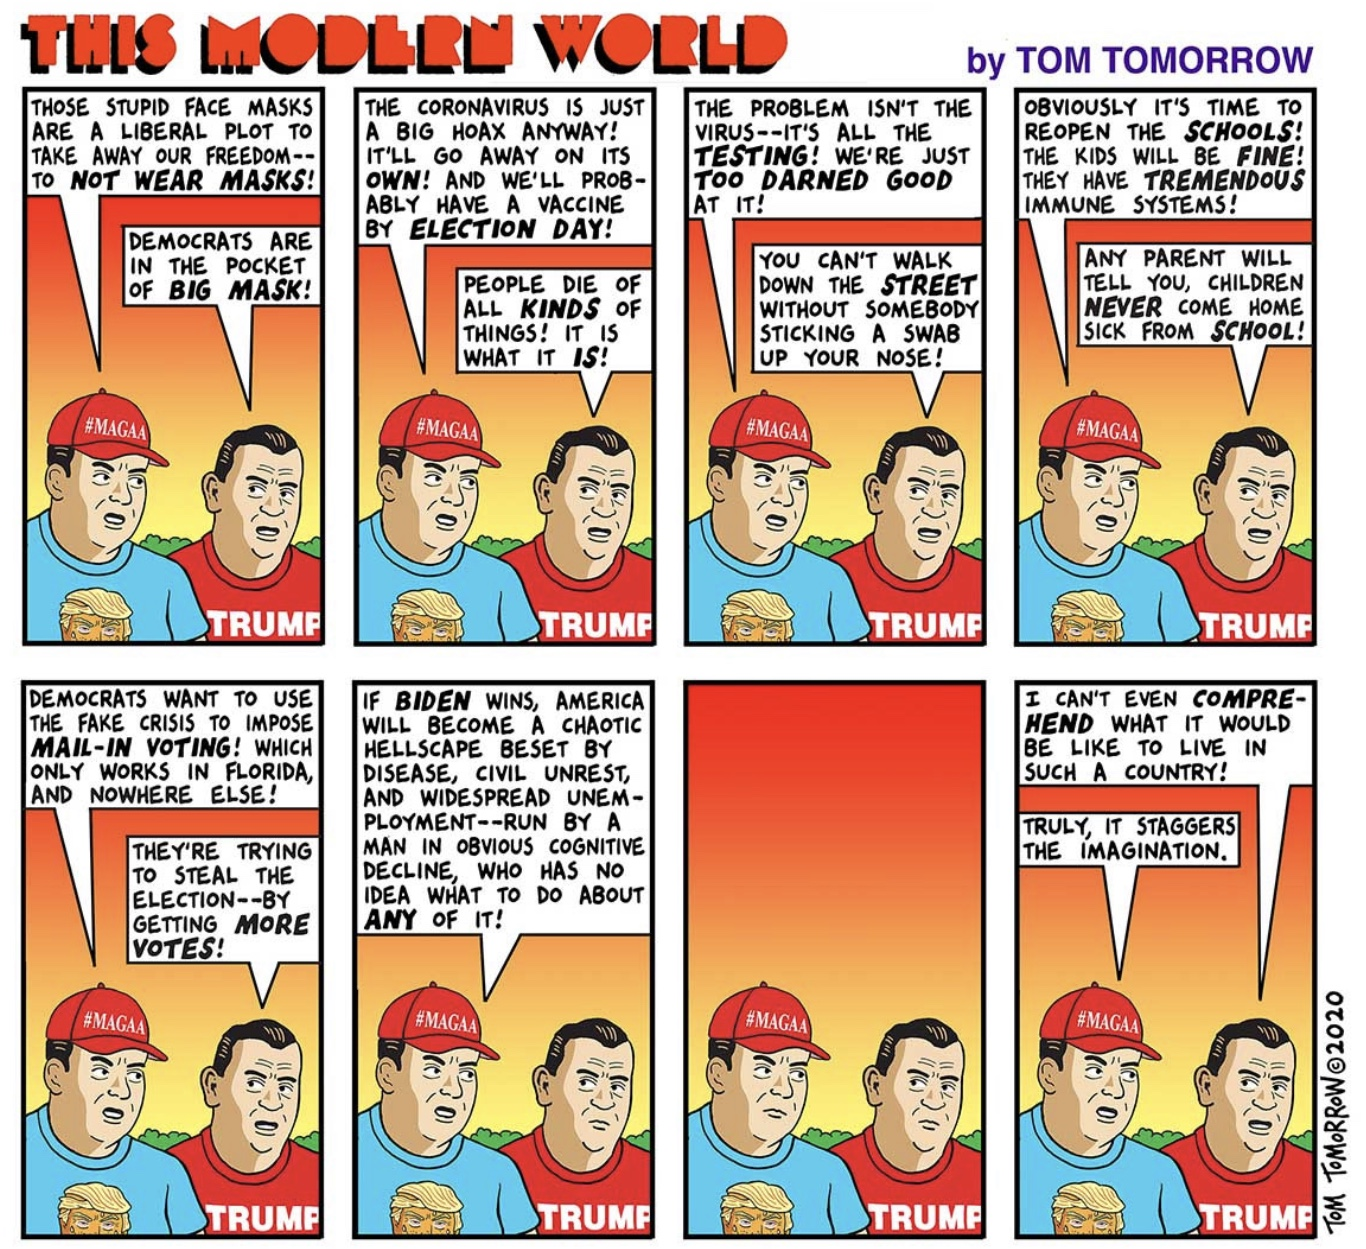 Political cartoons - the 'funny' pics thread.-dba71dd3-7718-40ac-a219-b01aec355667-jpeg